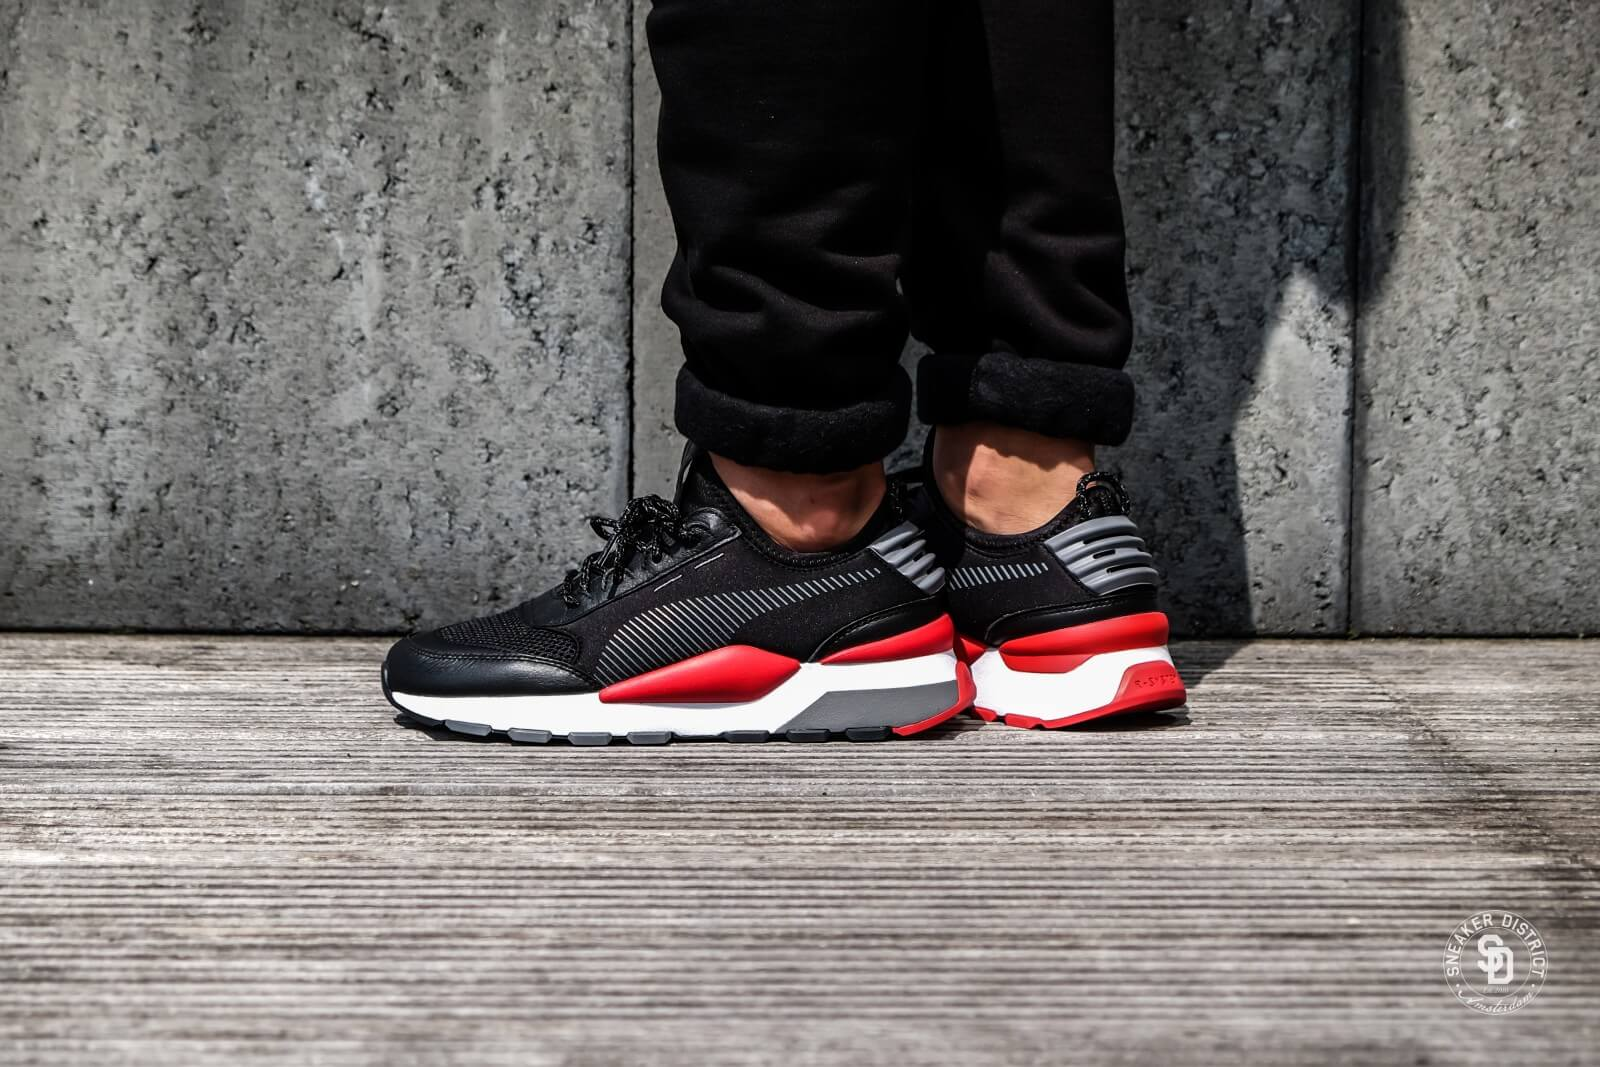 Puma RS-0 Play Black/High Risk Red - 0367515-02